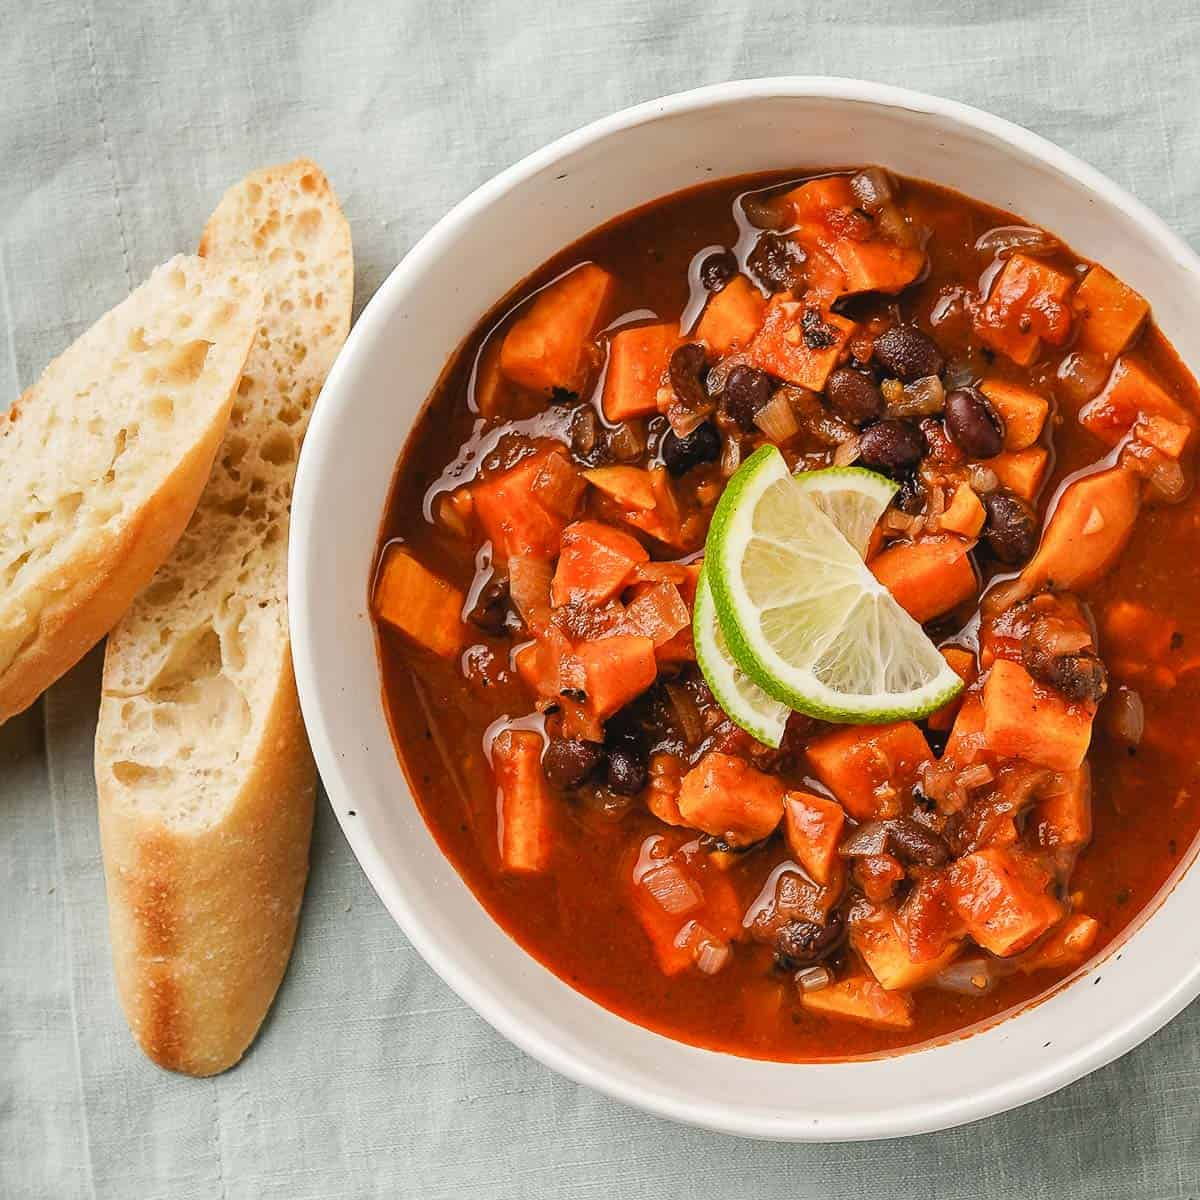 Sweet Potato Black Bean Soup in a bowl with bread on the side